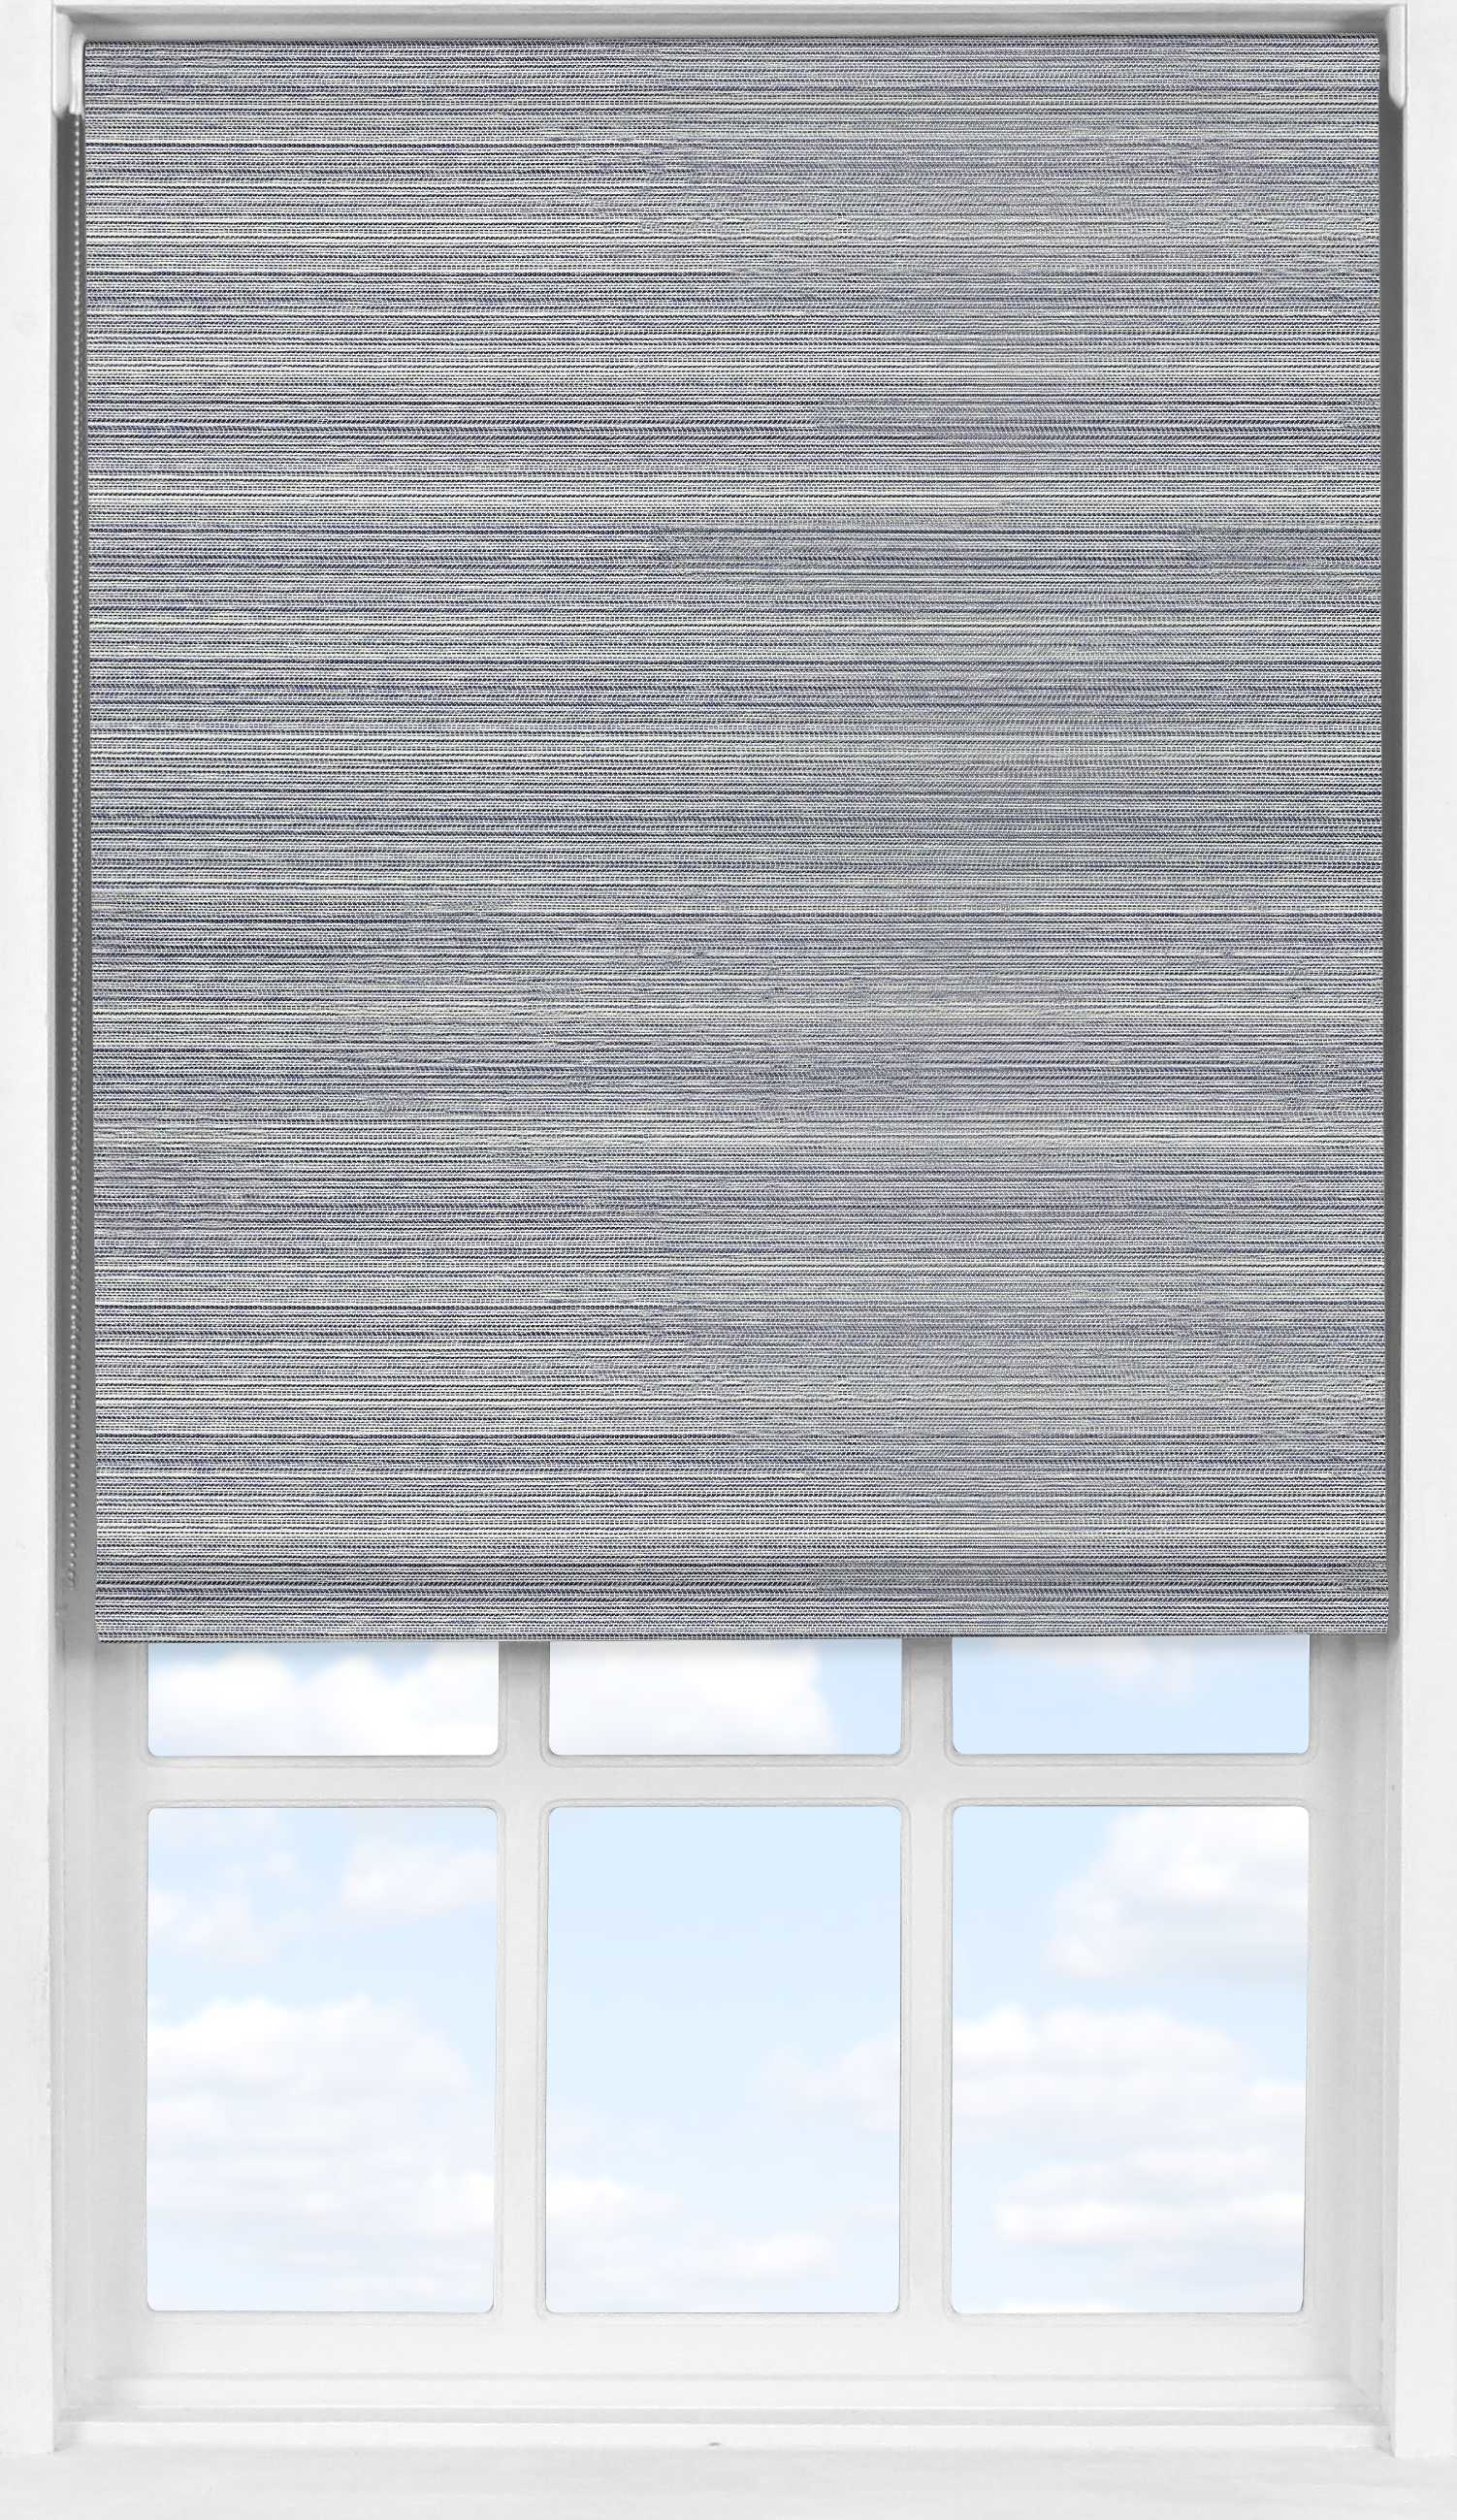 Easifit Roller Blind in Eastern Weave Pacific Translucent